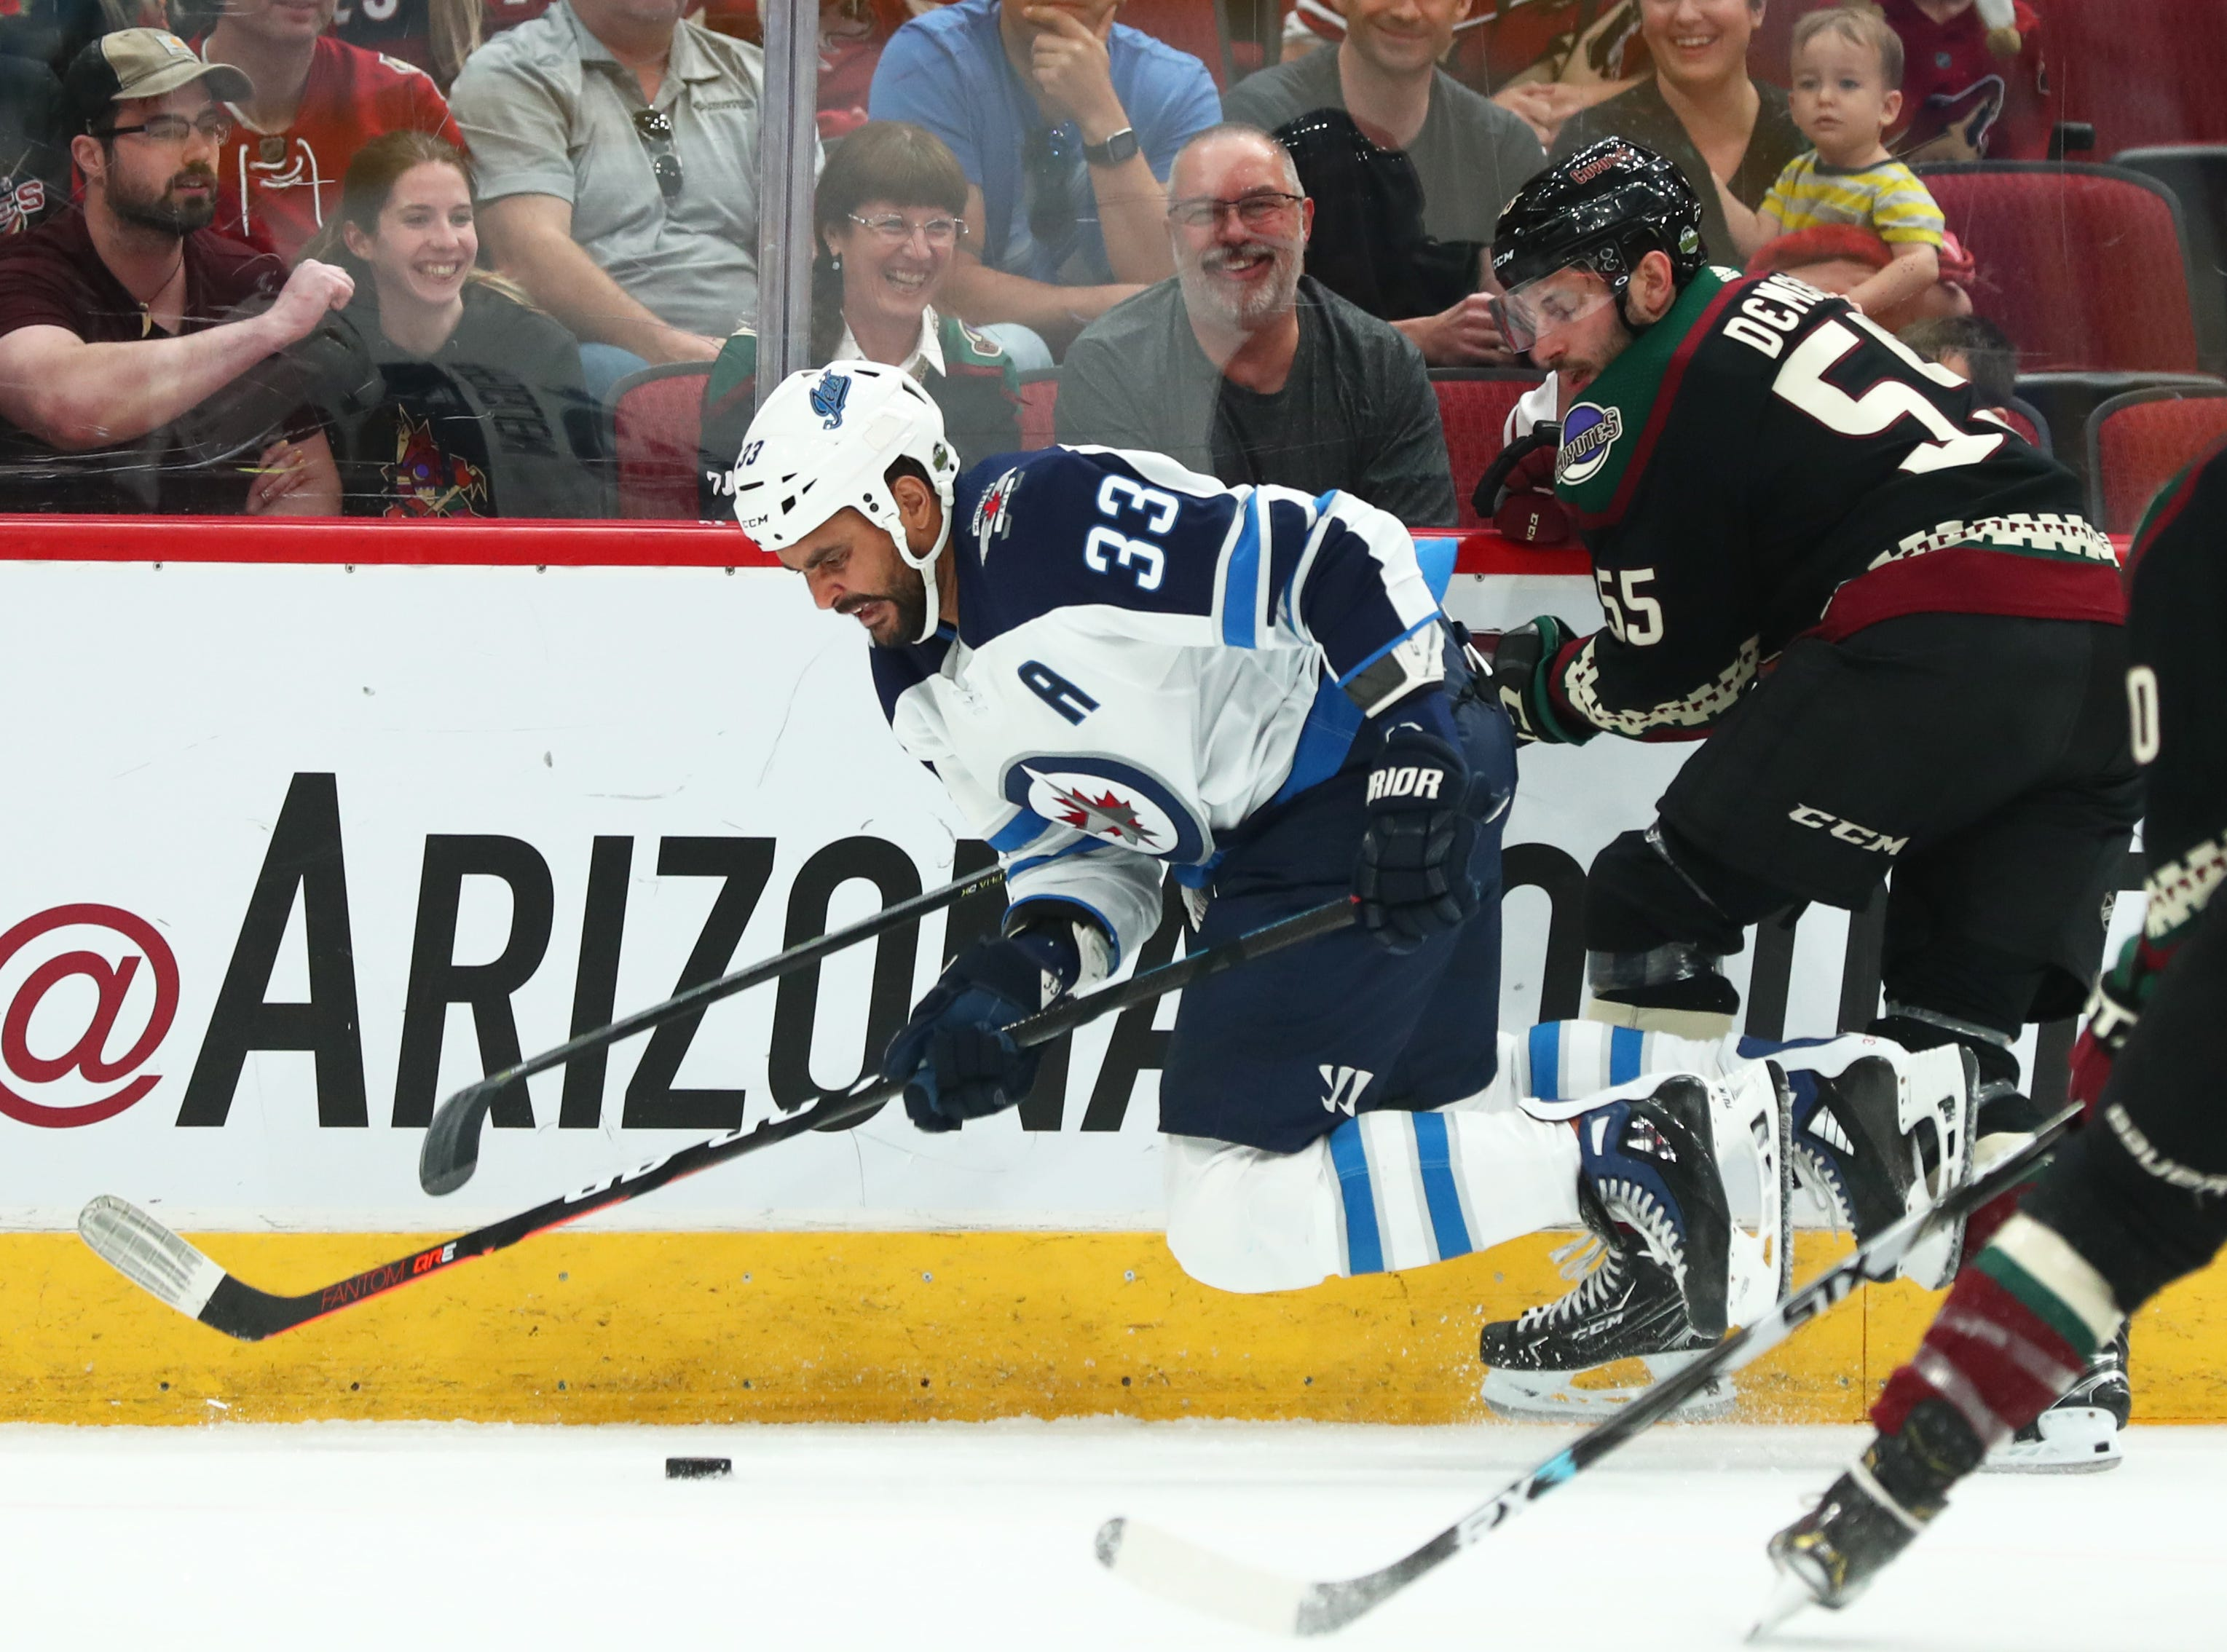 Apr 6, 2019; Glendale, AZ, USA; Winnipeg Jets defenseman Dustin Byfuglien (33) is tripped up by Arizona Coyotes defenseman Jason Demers (55) in the first period at Gila River Arena. Mandatory Credit: Mark J. Rebilas-USA TODAY Sports